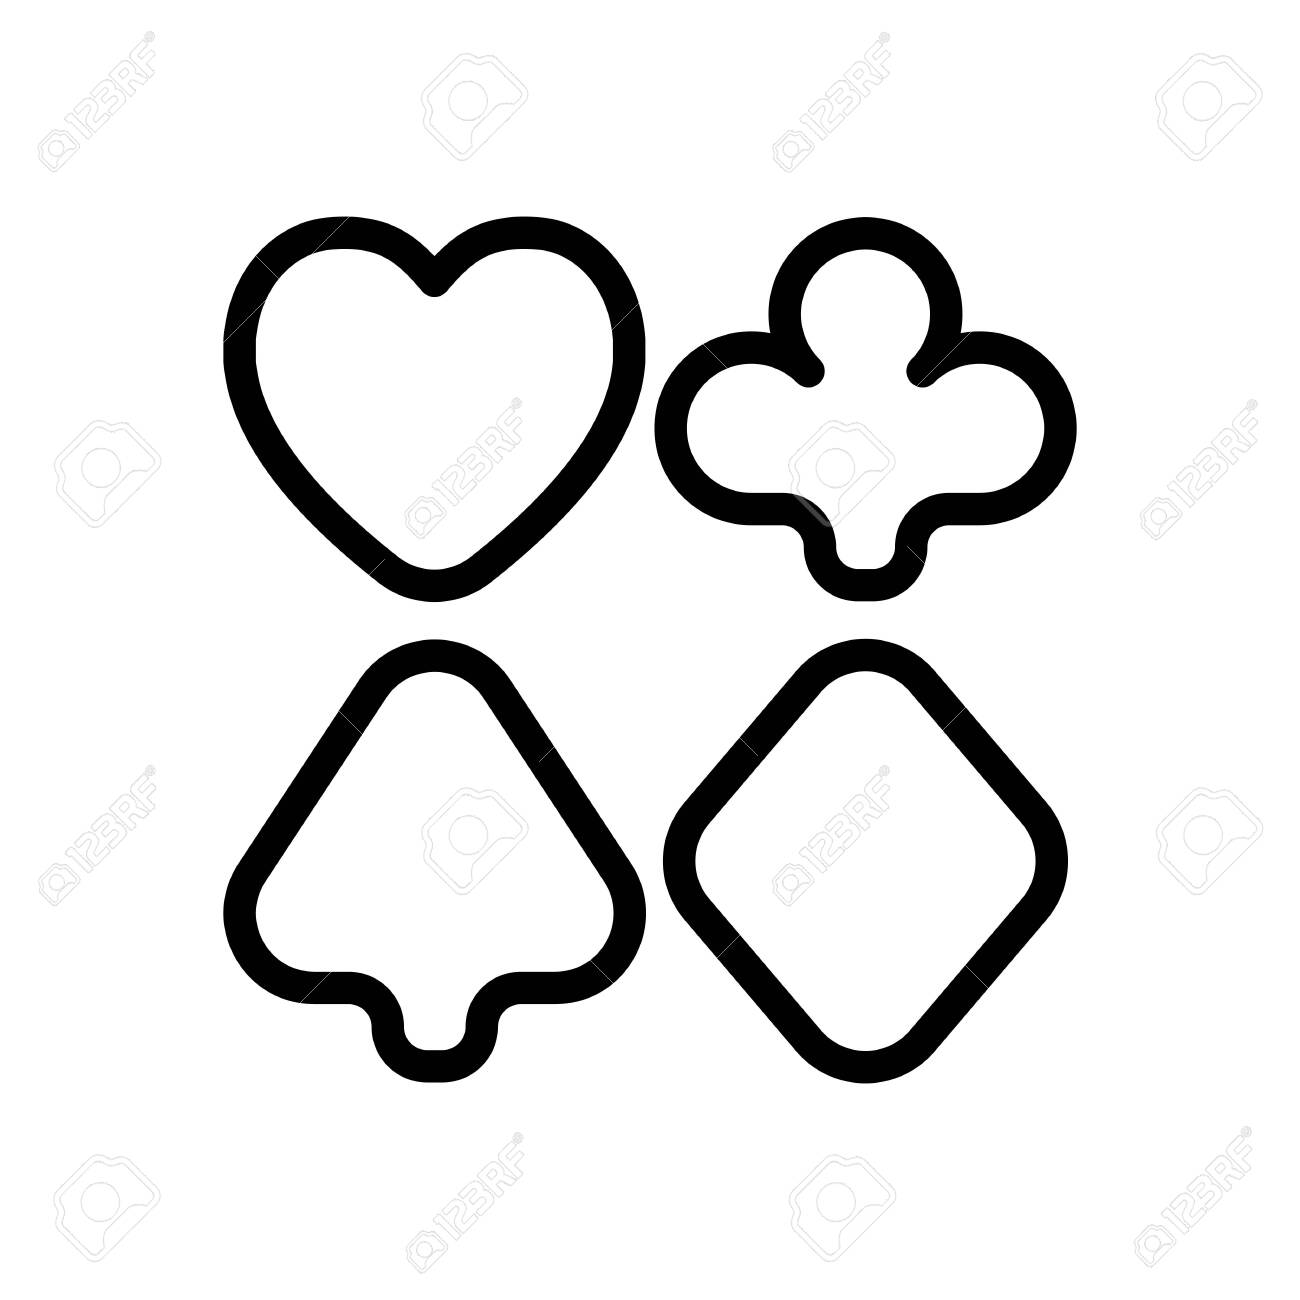 Playing Card Suits Poker Club Outline Design Black Icon On Royalty Free Cliparts Vectors And Stock Illustration Image 142892525